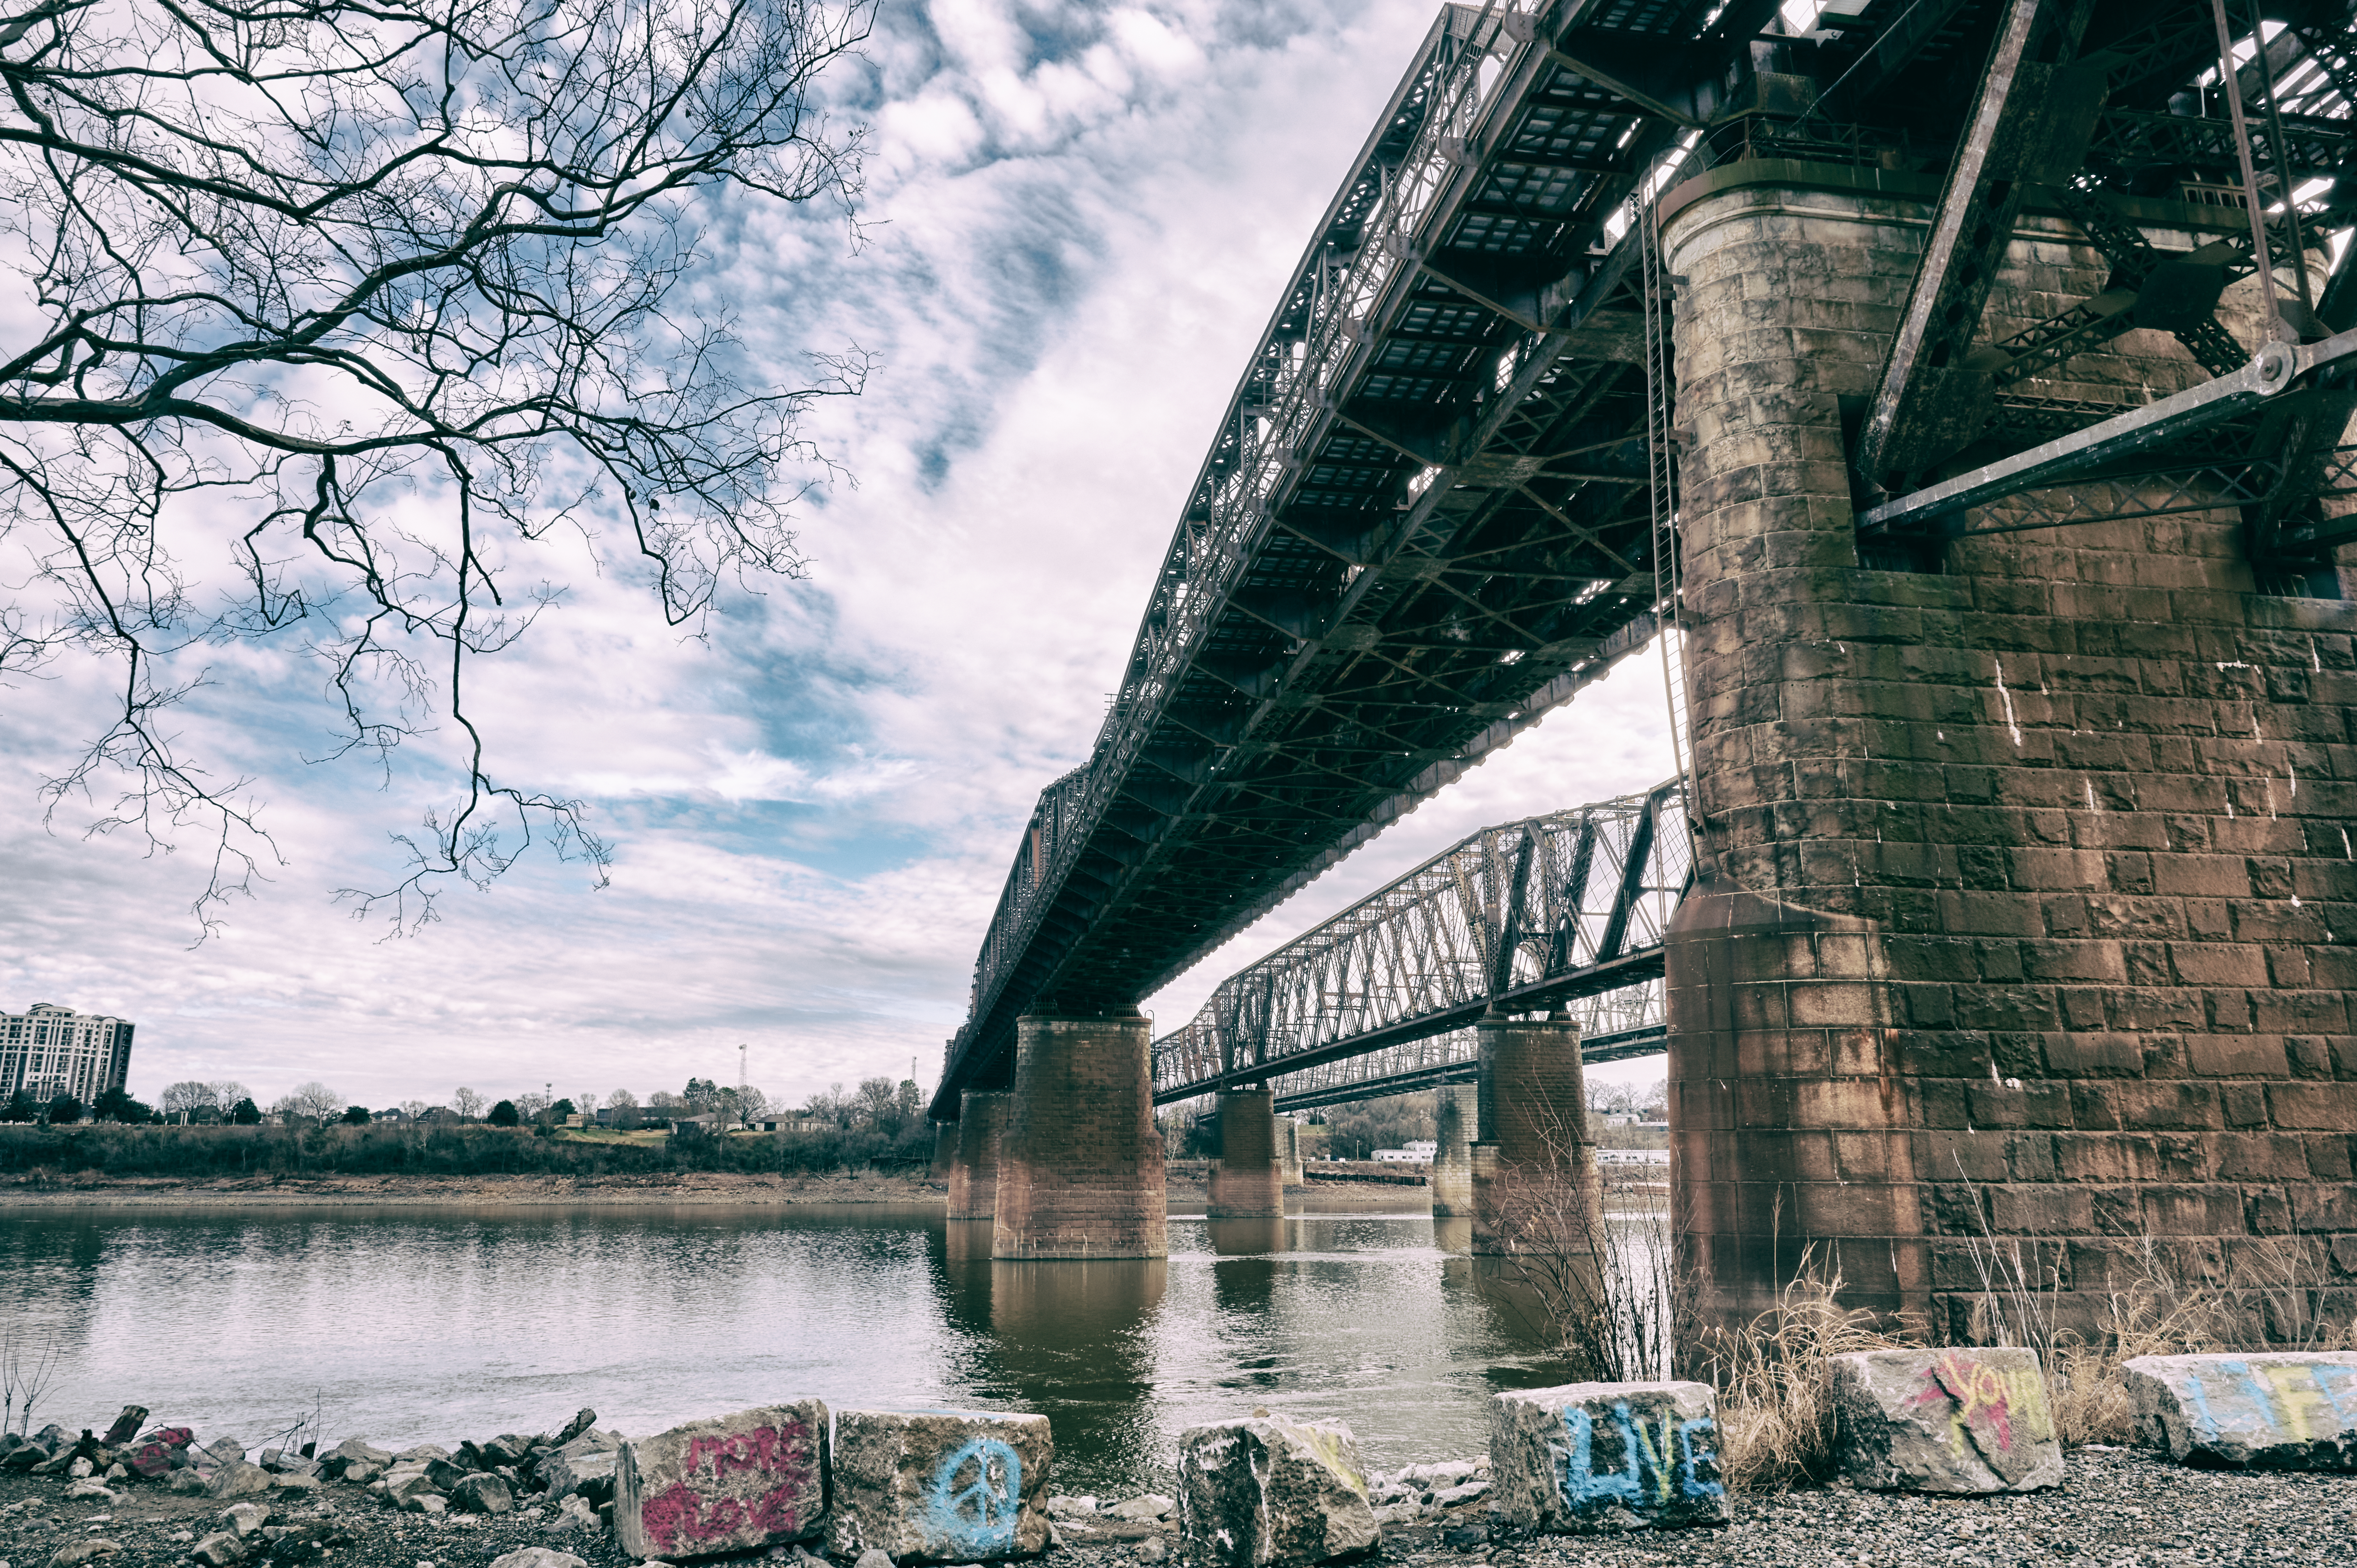 a bridge over a large river with graffiti under it